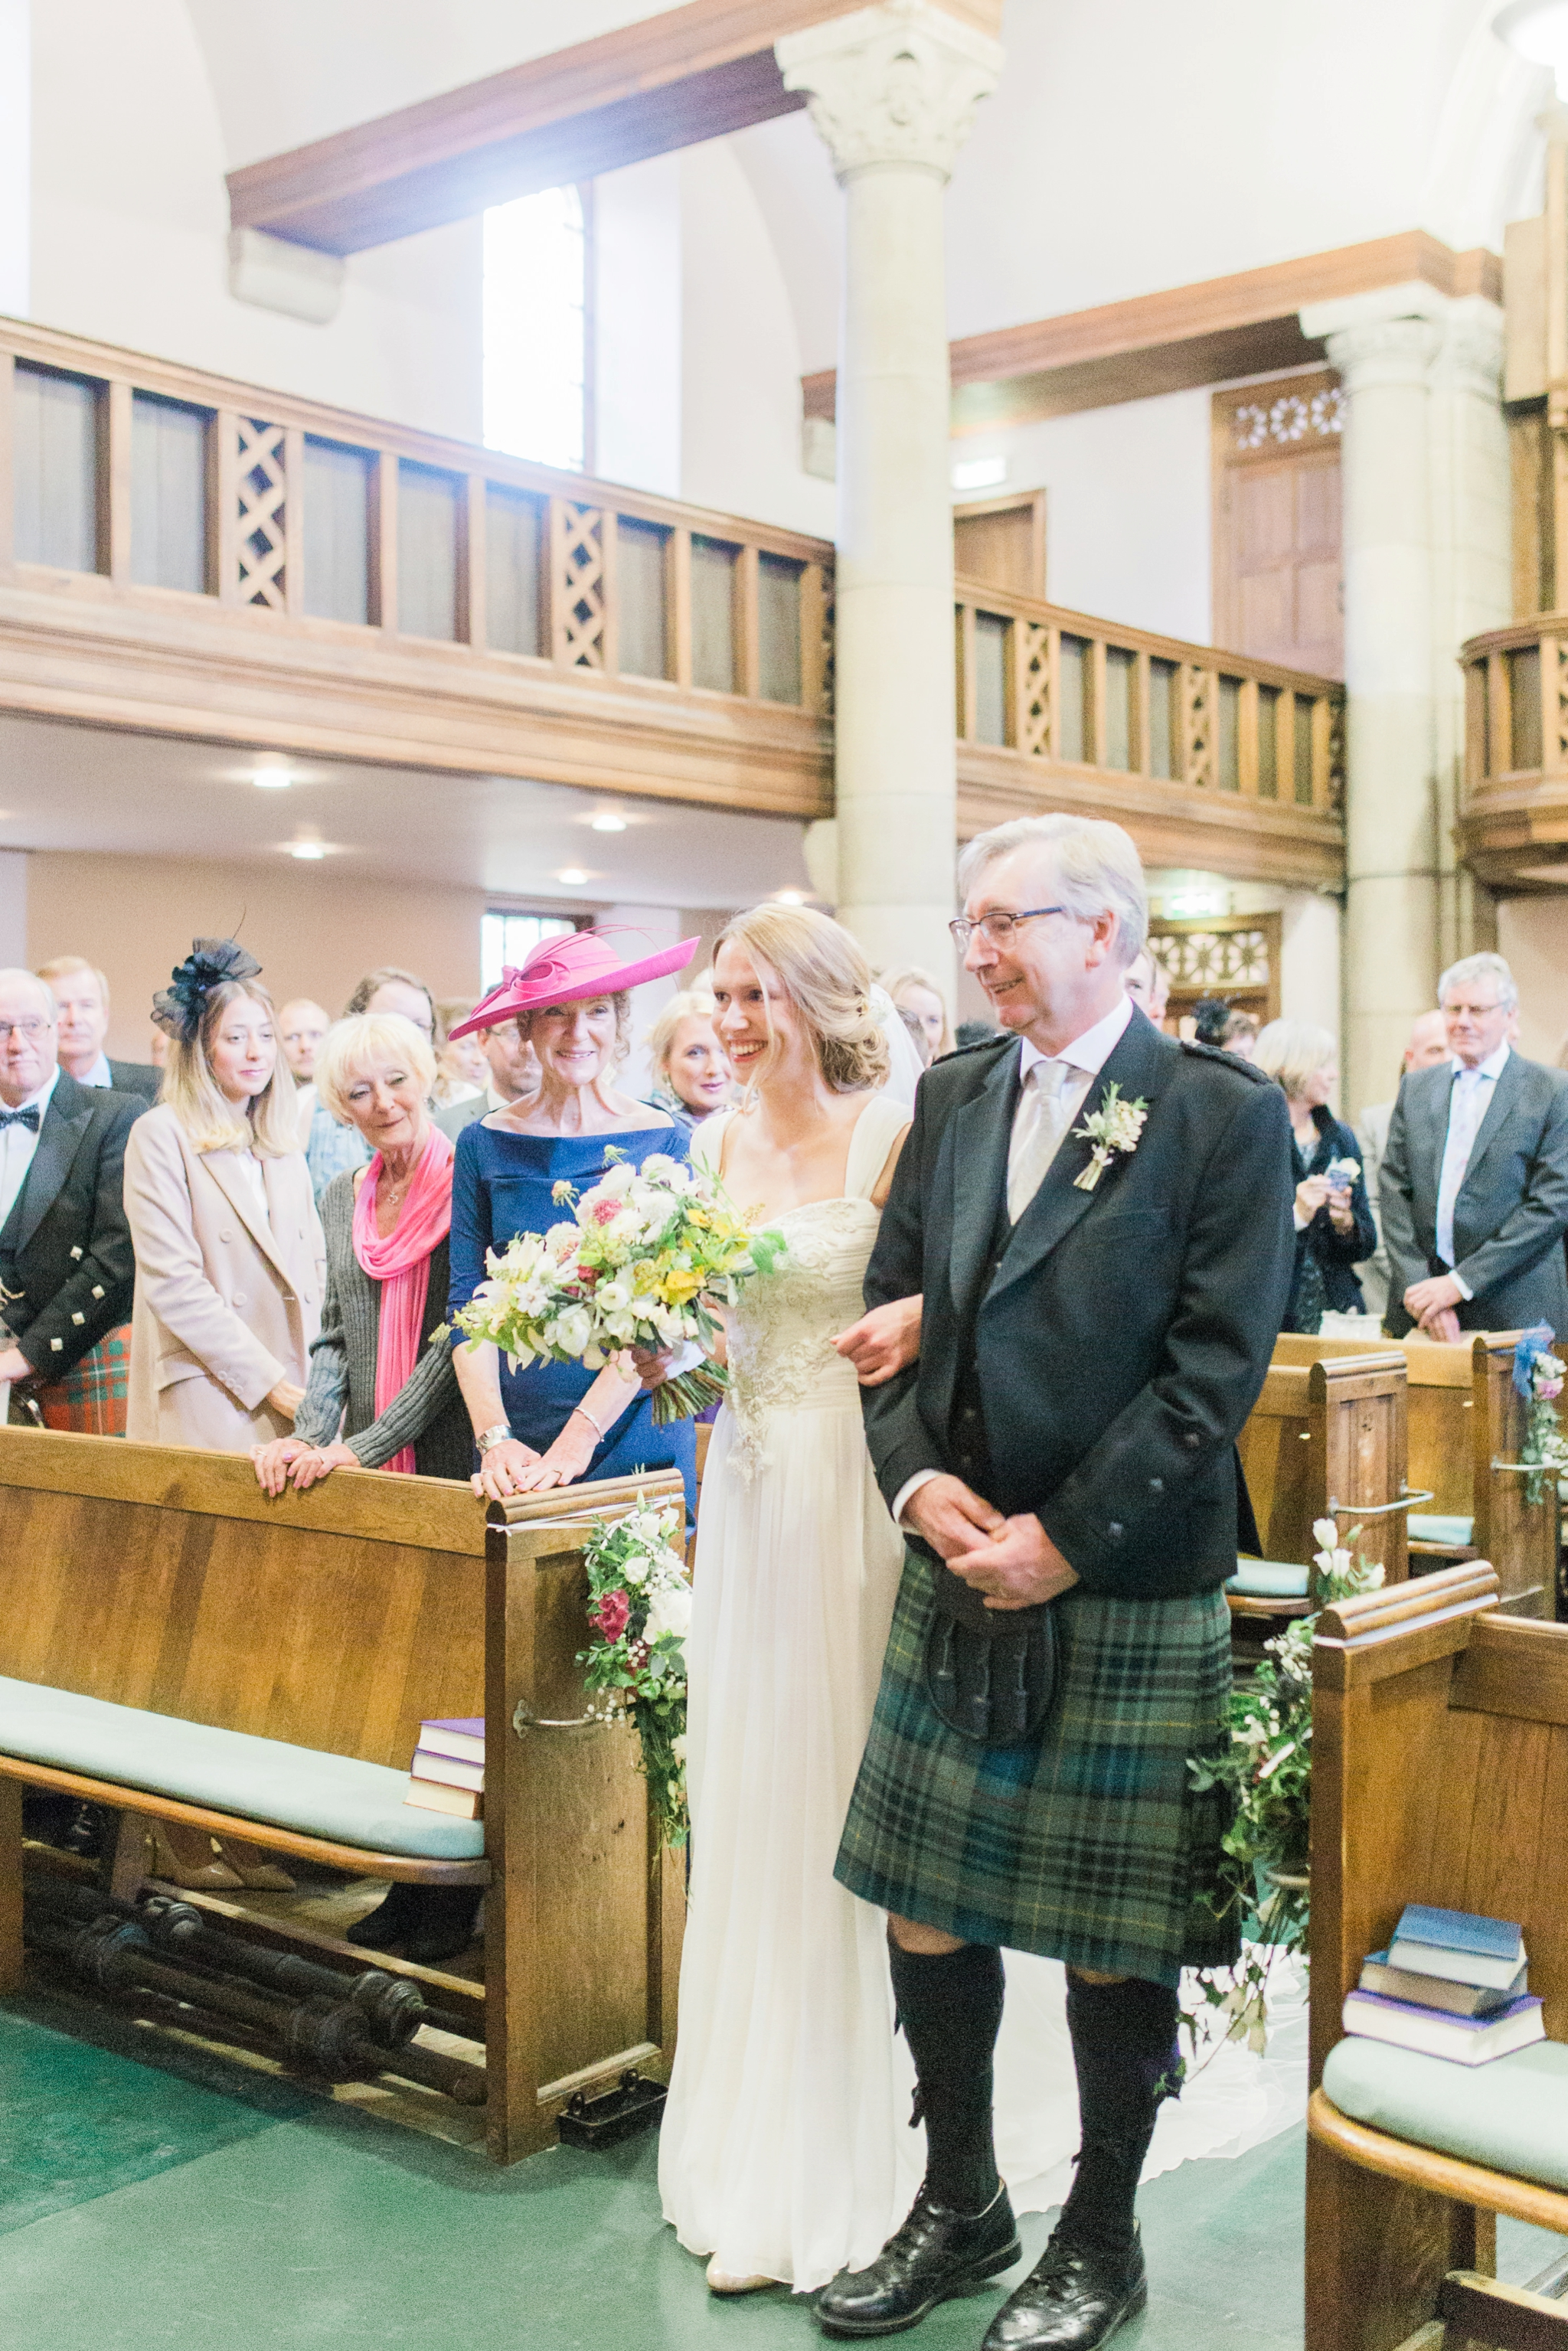 Suzanne_li_photography_kirknewton_wedding_0045.jpg